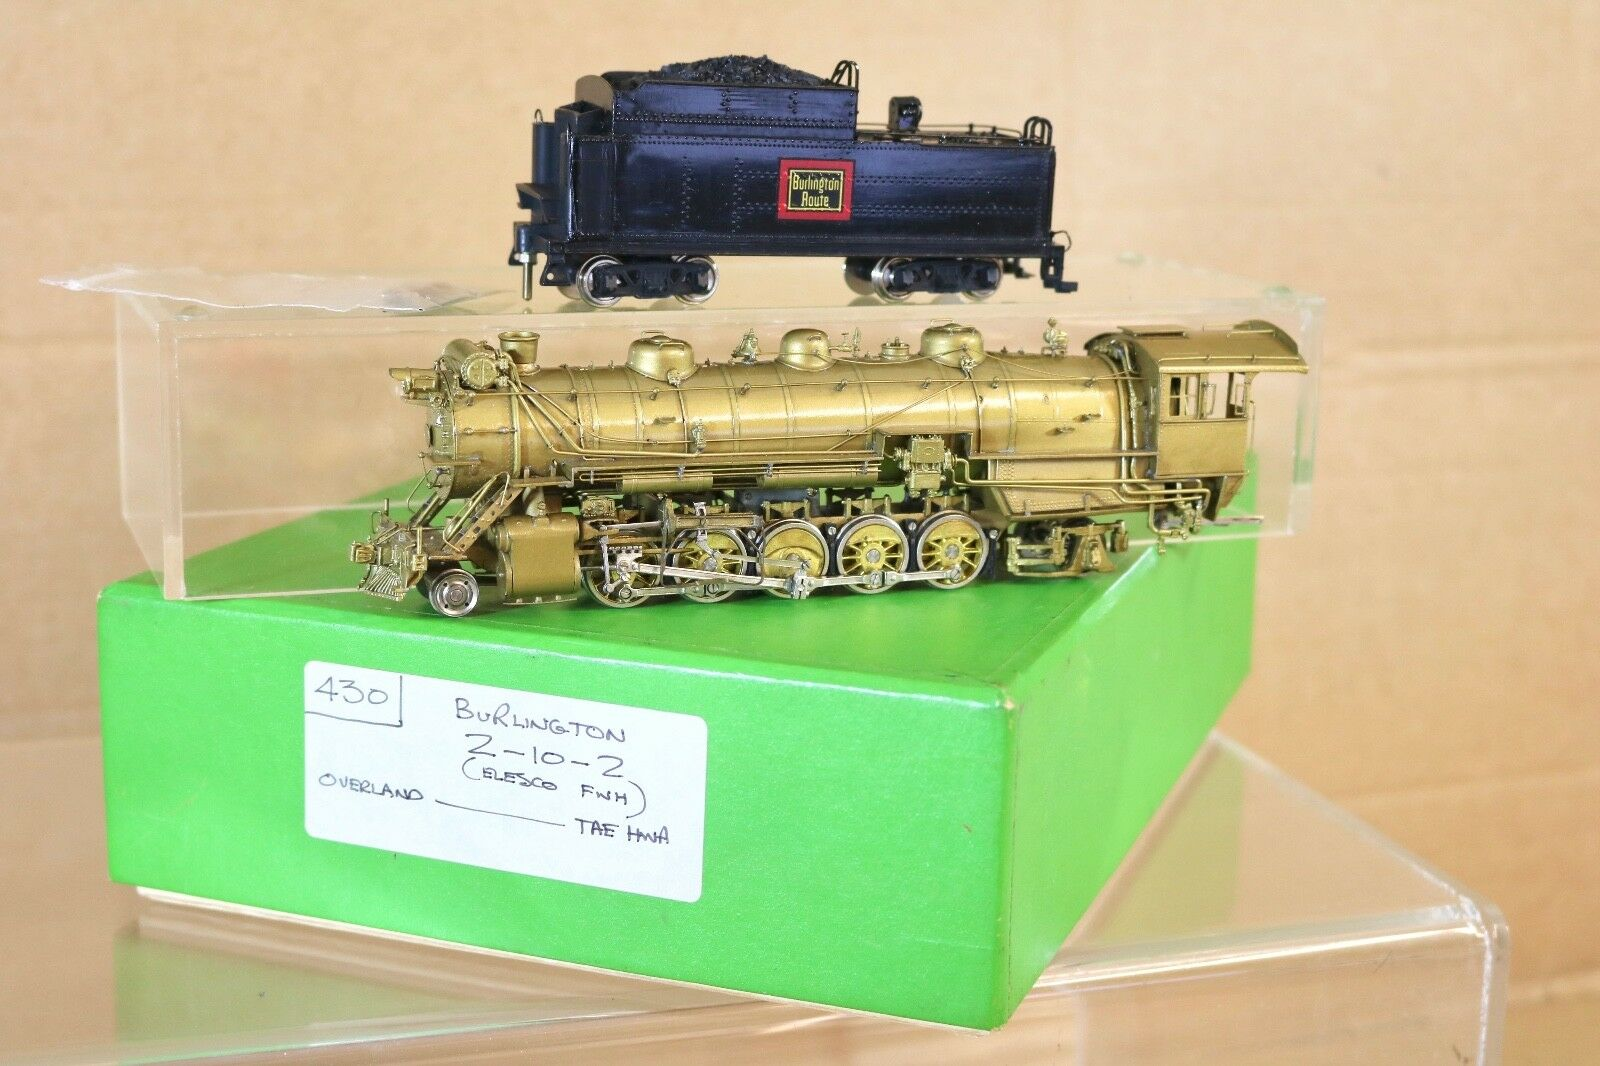 ModelllLE VON ÜBERLAND BRASS BURLINGTON CB&Q 2-10-0 ELESCO FWH LOCOMOTIVE BOXED np